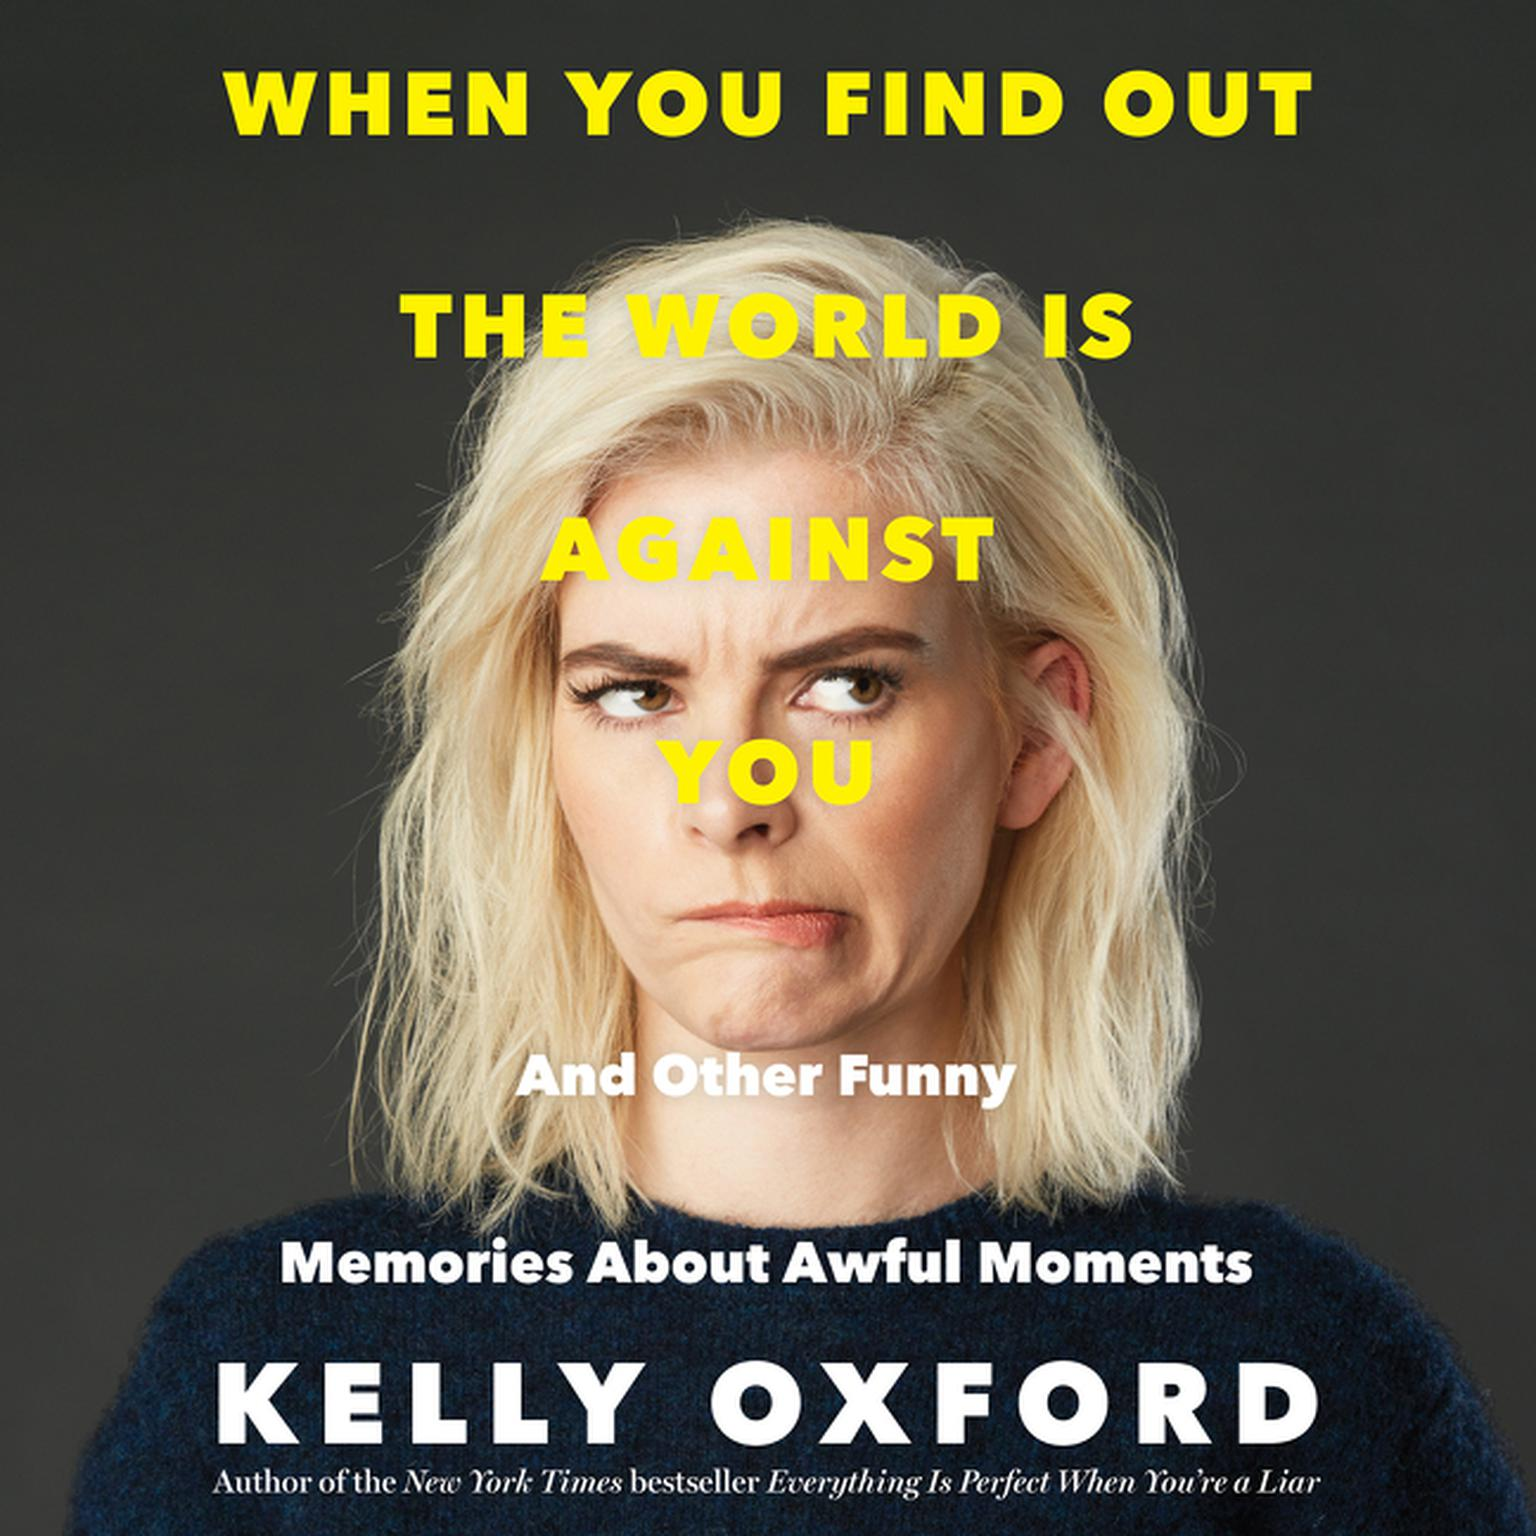 Printable When You Find Out the World is Against You: And Other Funny Memories About Awful Moments Audiobook Cover Art